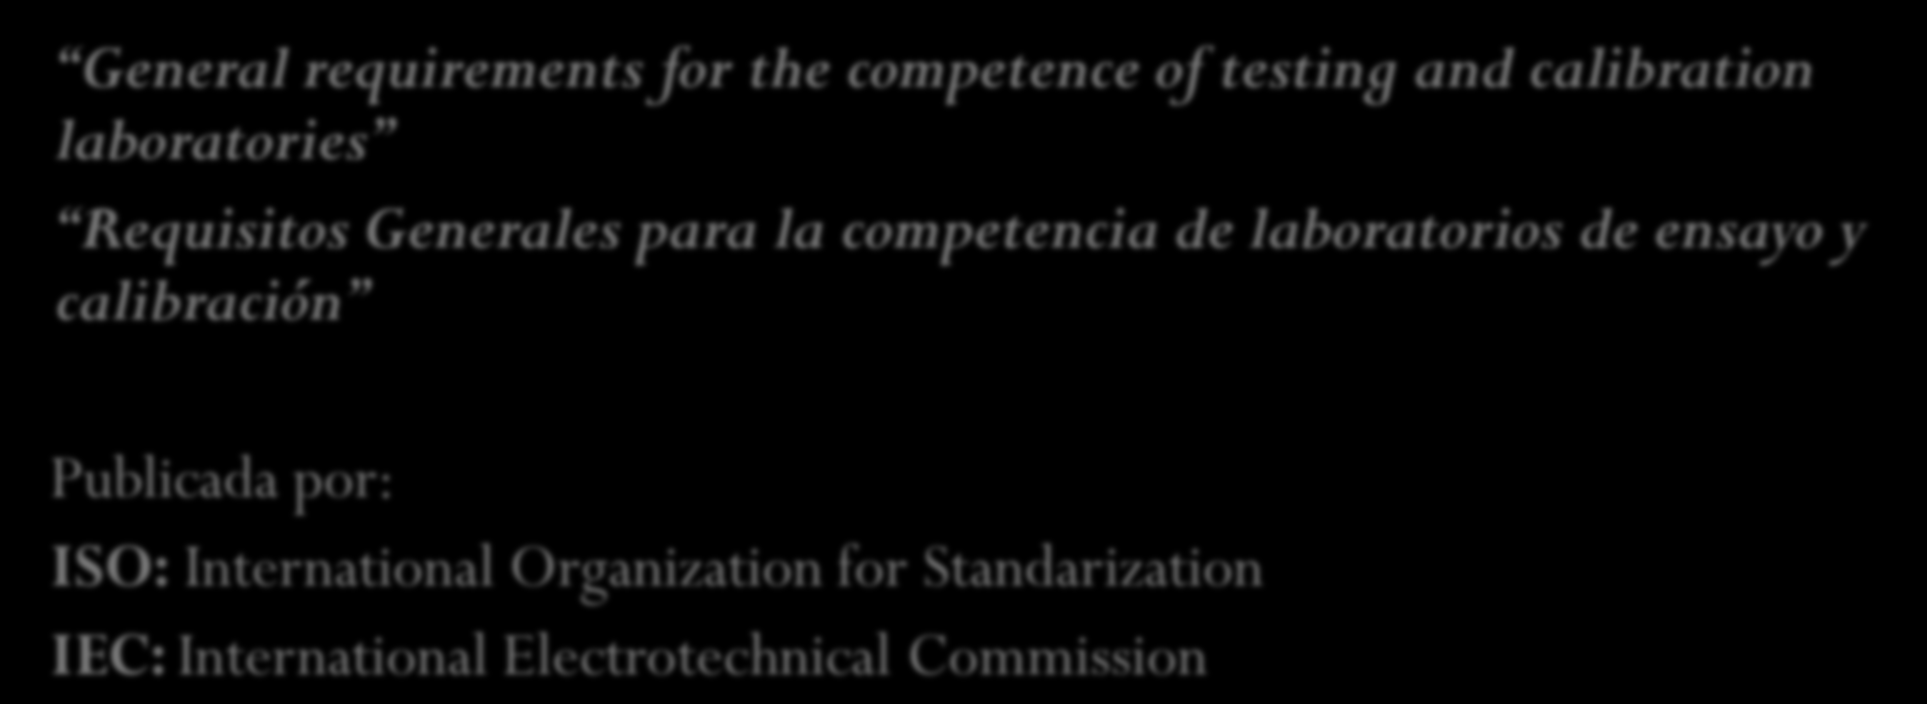 NORMA INTERNACIONAL ISO/IEC 17025:2005 General requirements for the competence of testing and calibration laboratories Requisitos Generales para la